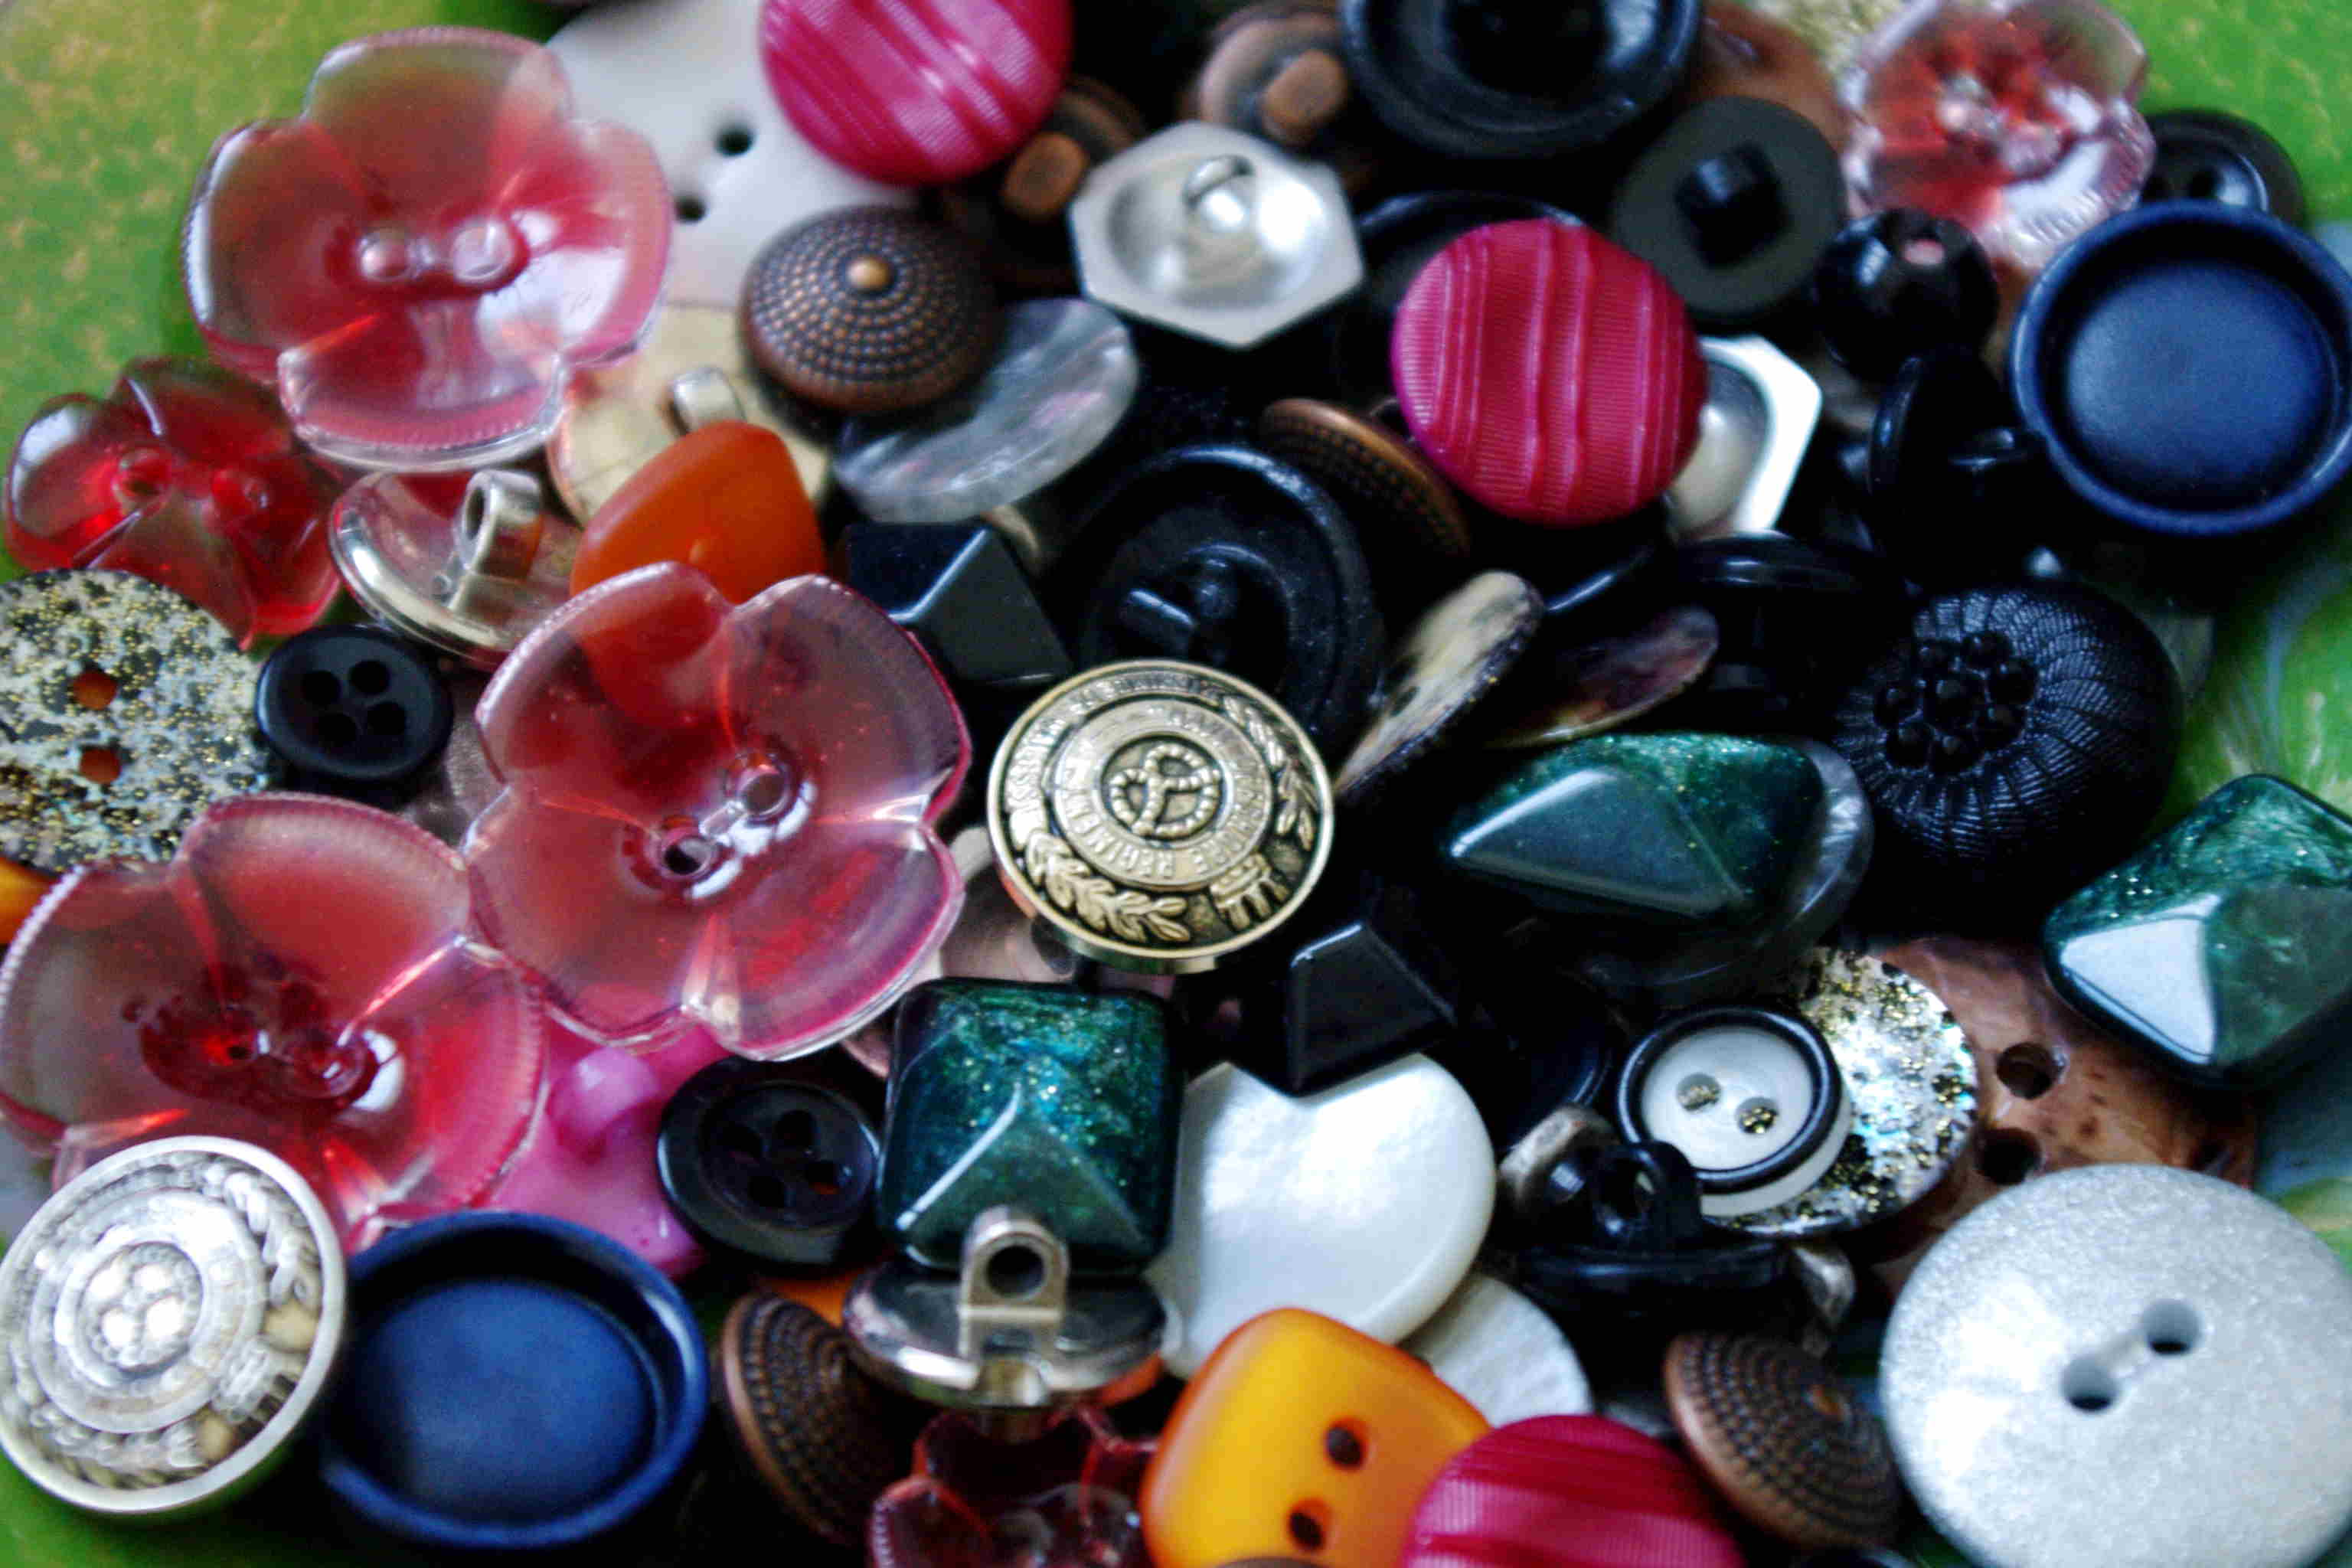 Knöpfe machen den Stil – buttons define the style